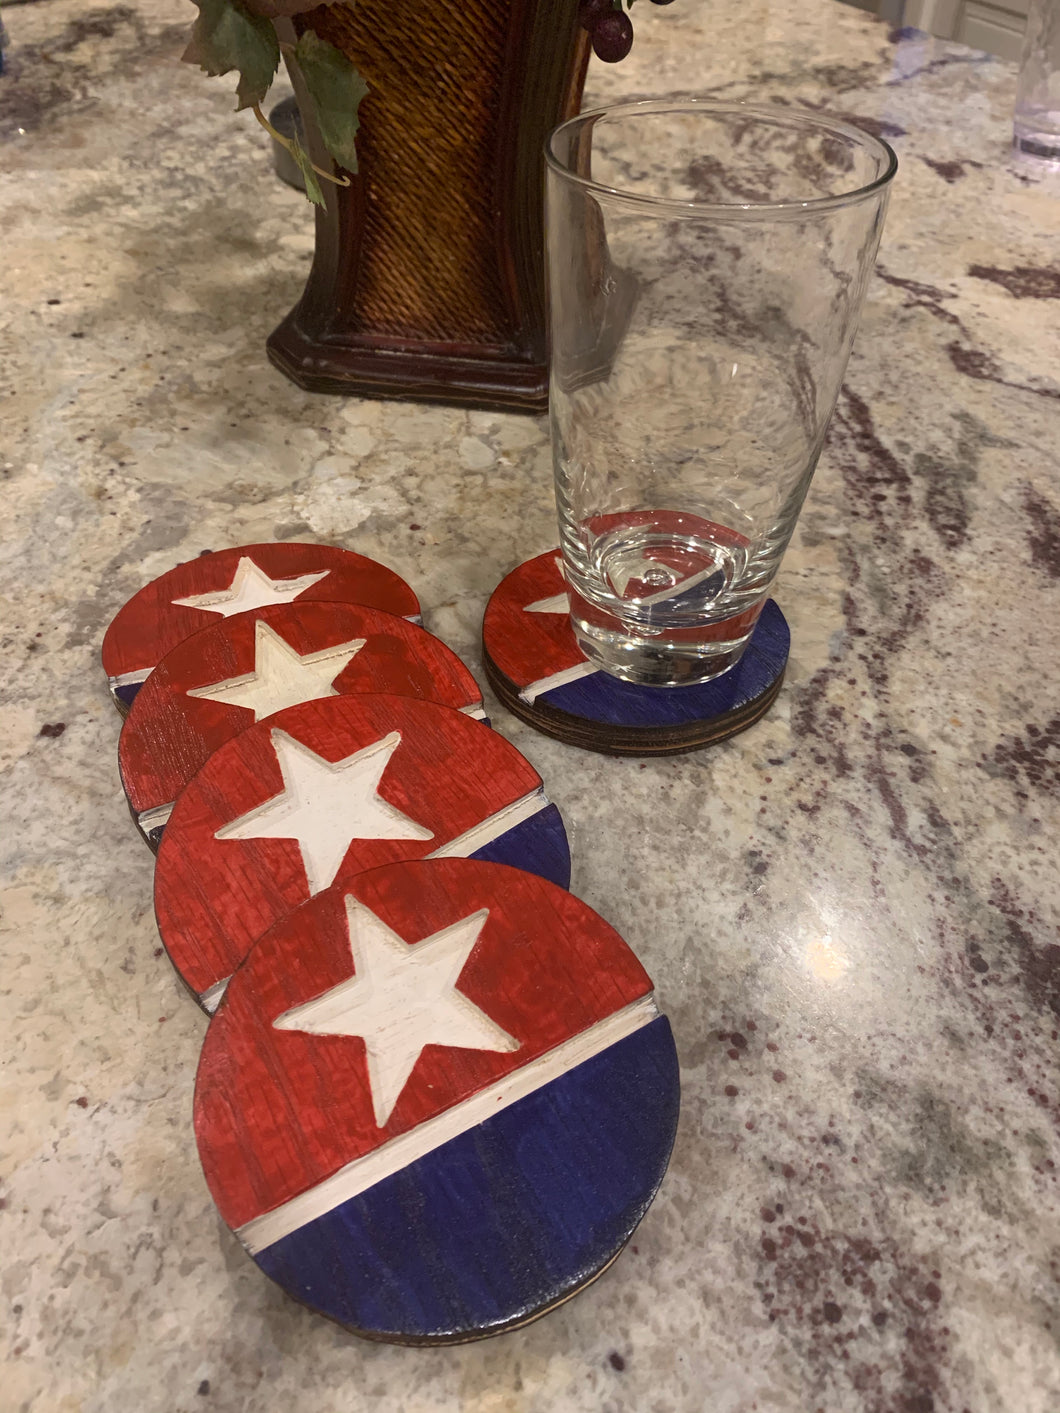 Patriotic Red White and Blue Handmade Wood Coaster Set of 5 - Flags Forever